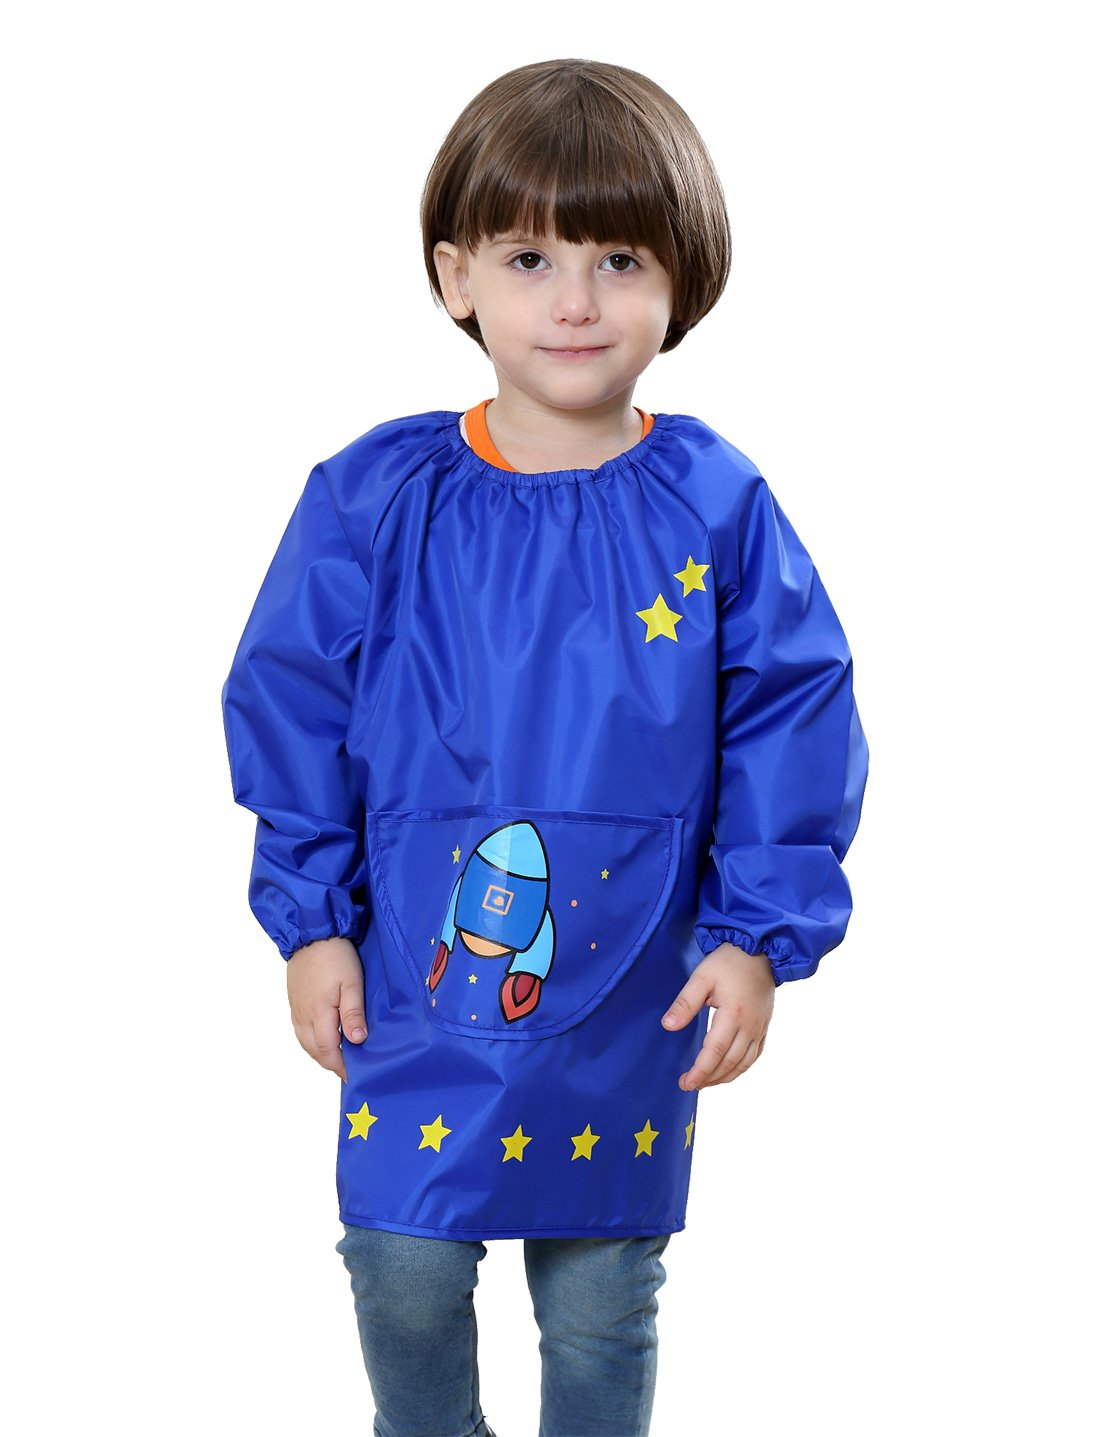 Rocket Cute Cartoon Waterproof Bibs Baby Smock Apron Overclothes for Kids Child Toddler Pullover Long Sleeve Painting Apron Blue 4-6 T DAWNTUNG